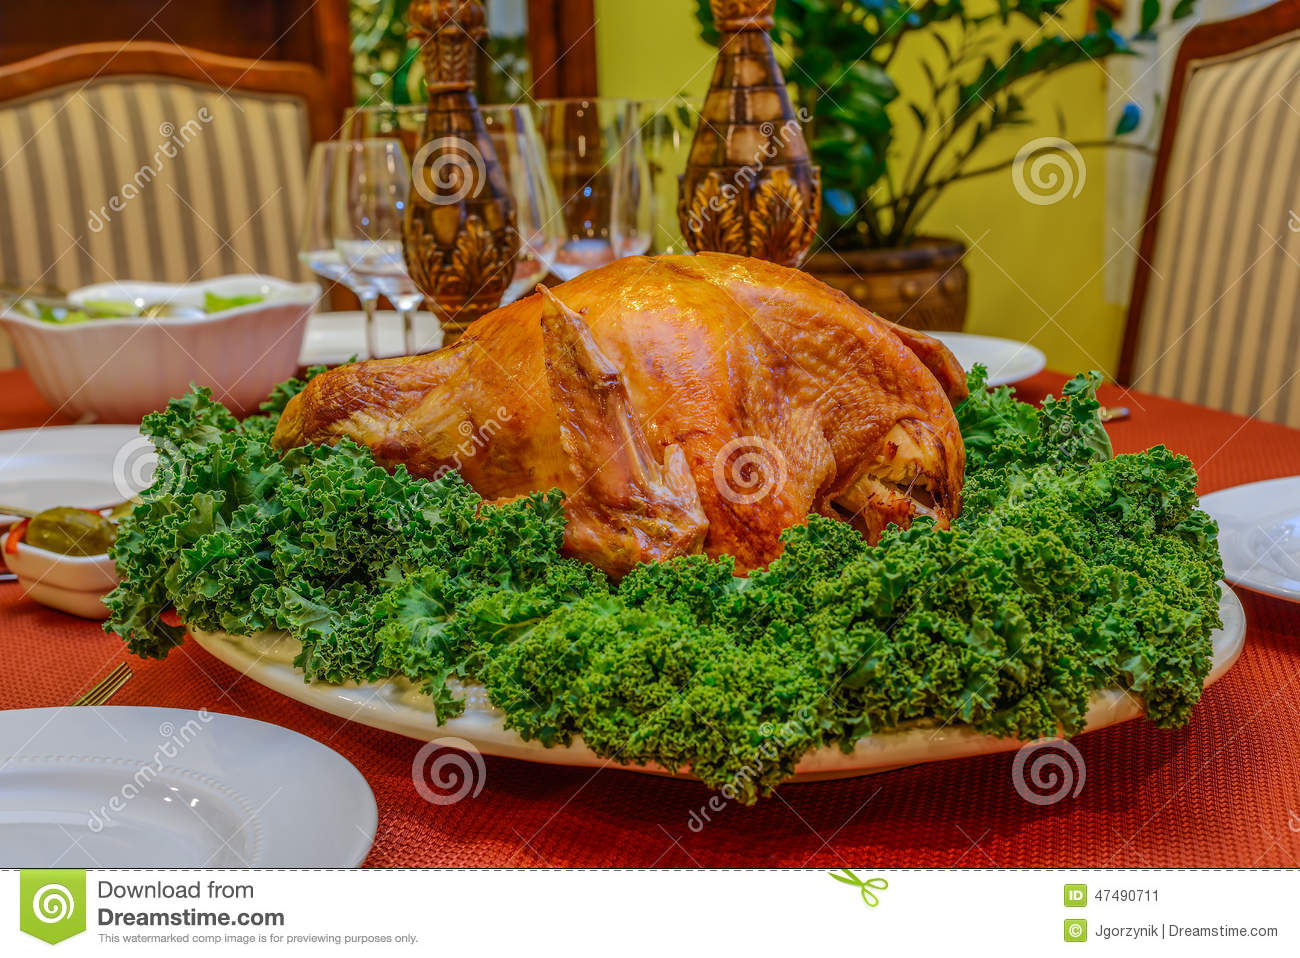 Roasted turkey & Roasted turkey stock image. Image of meal baked herbs - 47490711